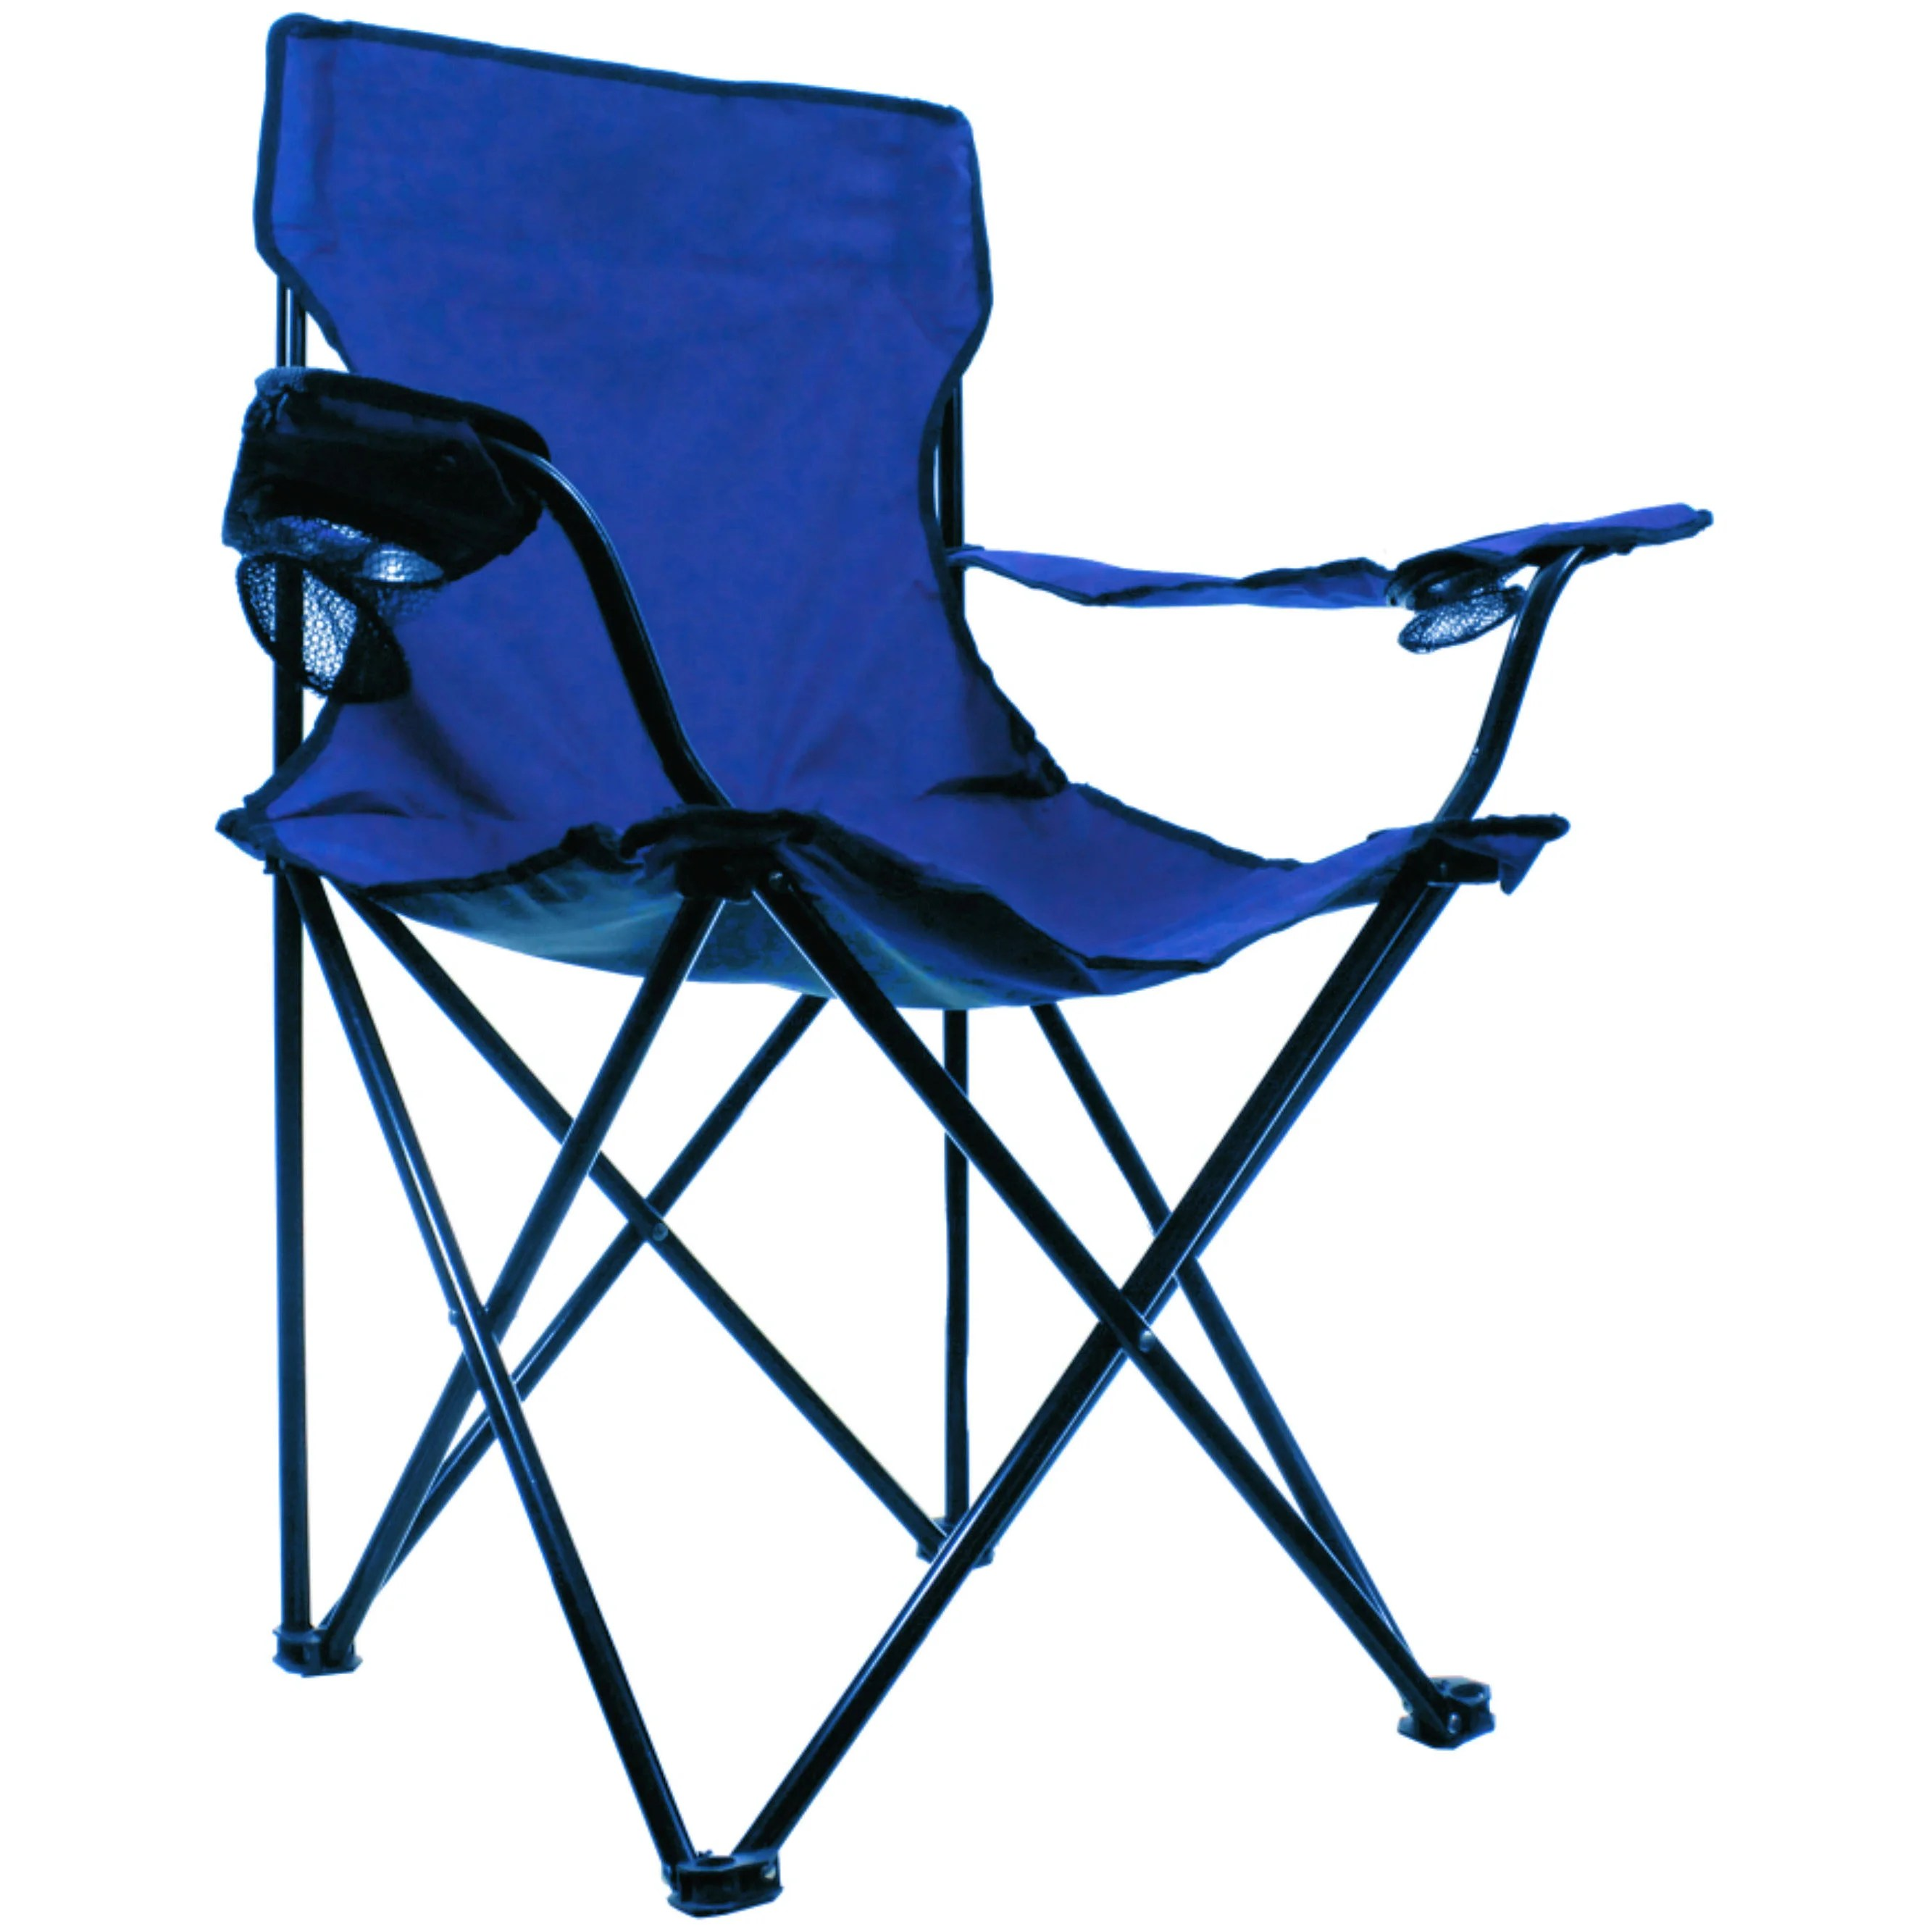 quality folding chairs glider chair parts with carrying bag trade show giveaways